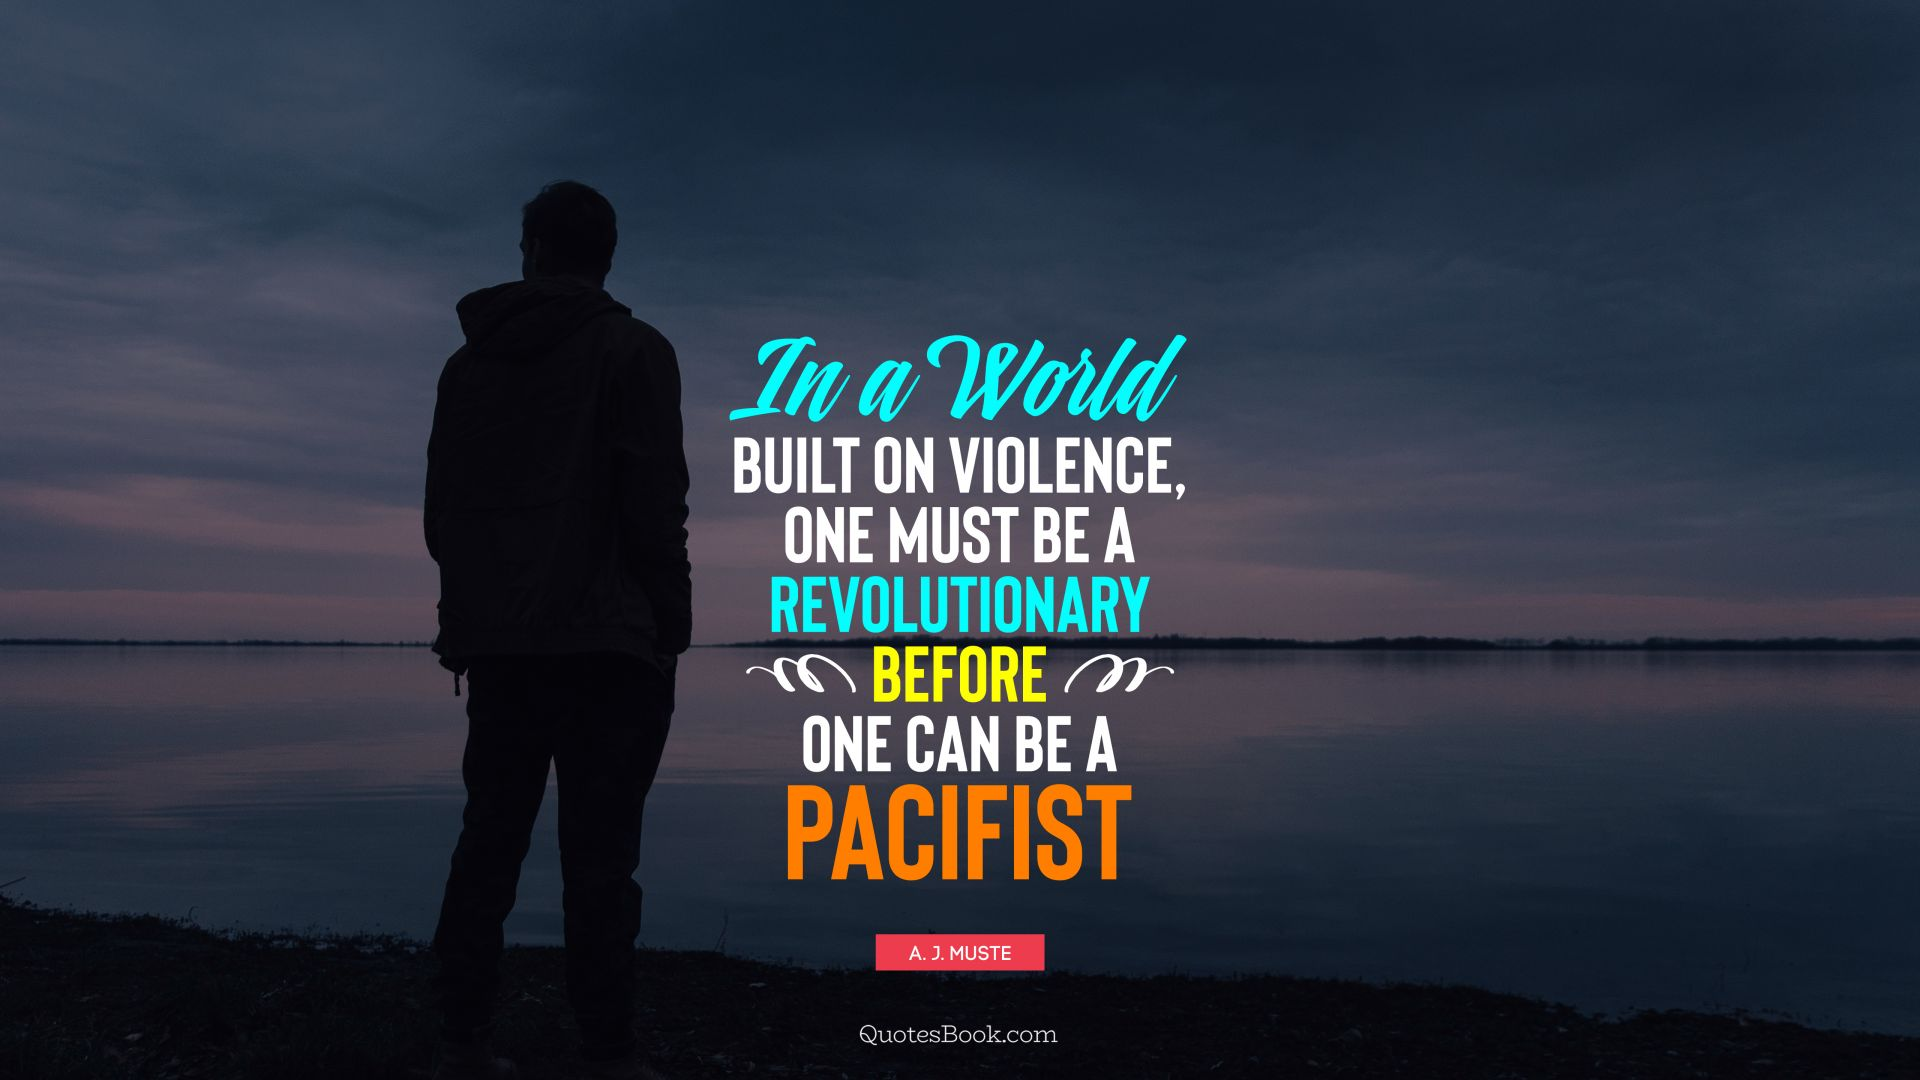 In a world built on violence, one must be a revolutionary before one can be a pacifist. - Quote by A. J. Muste